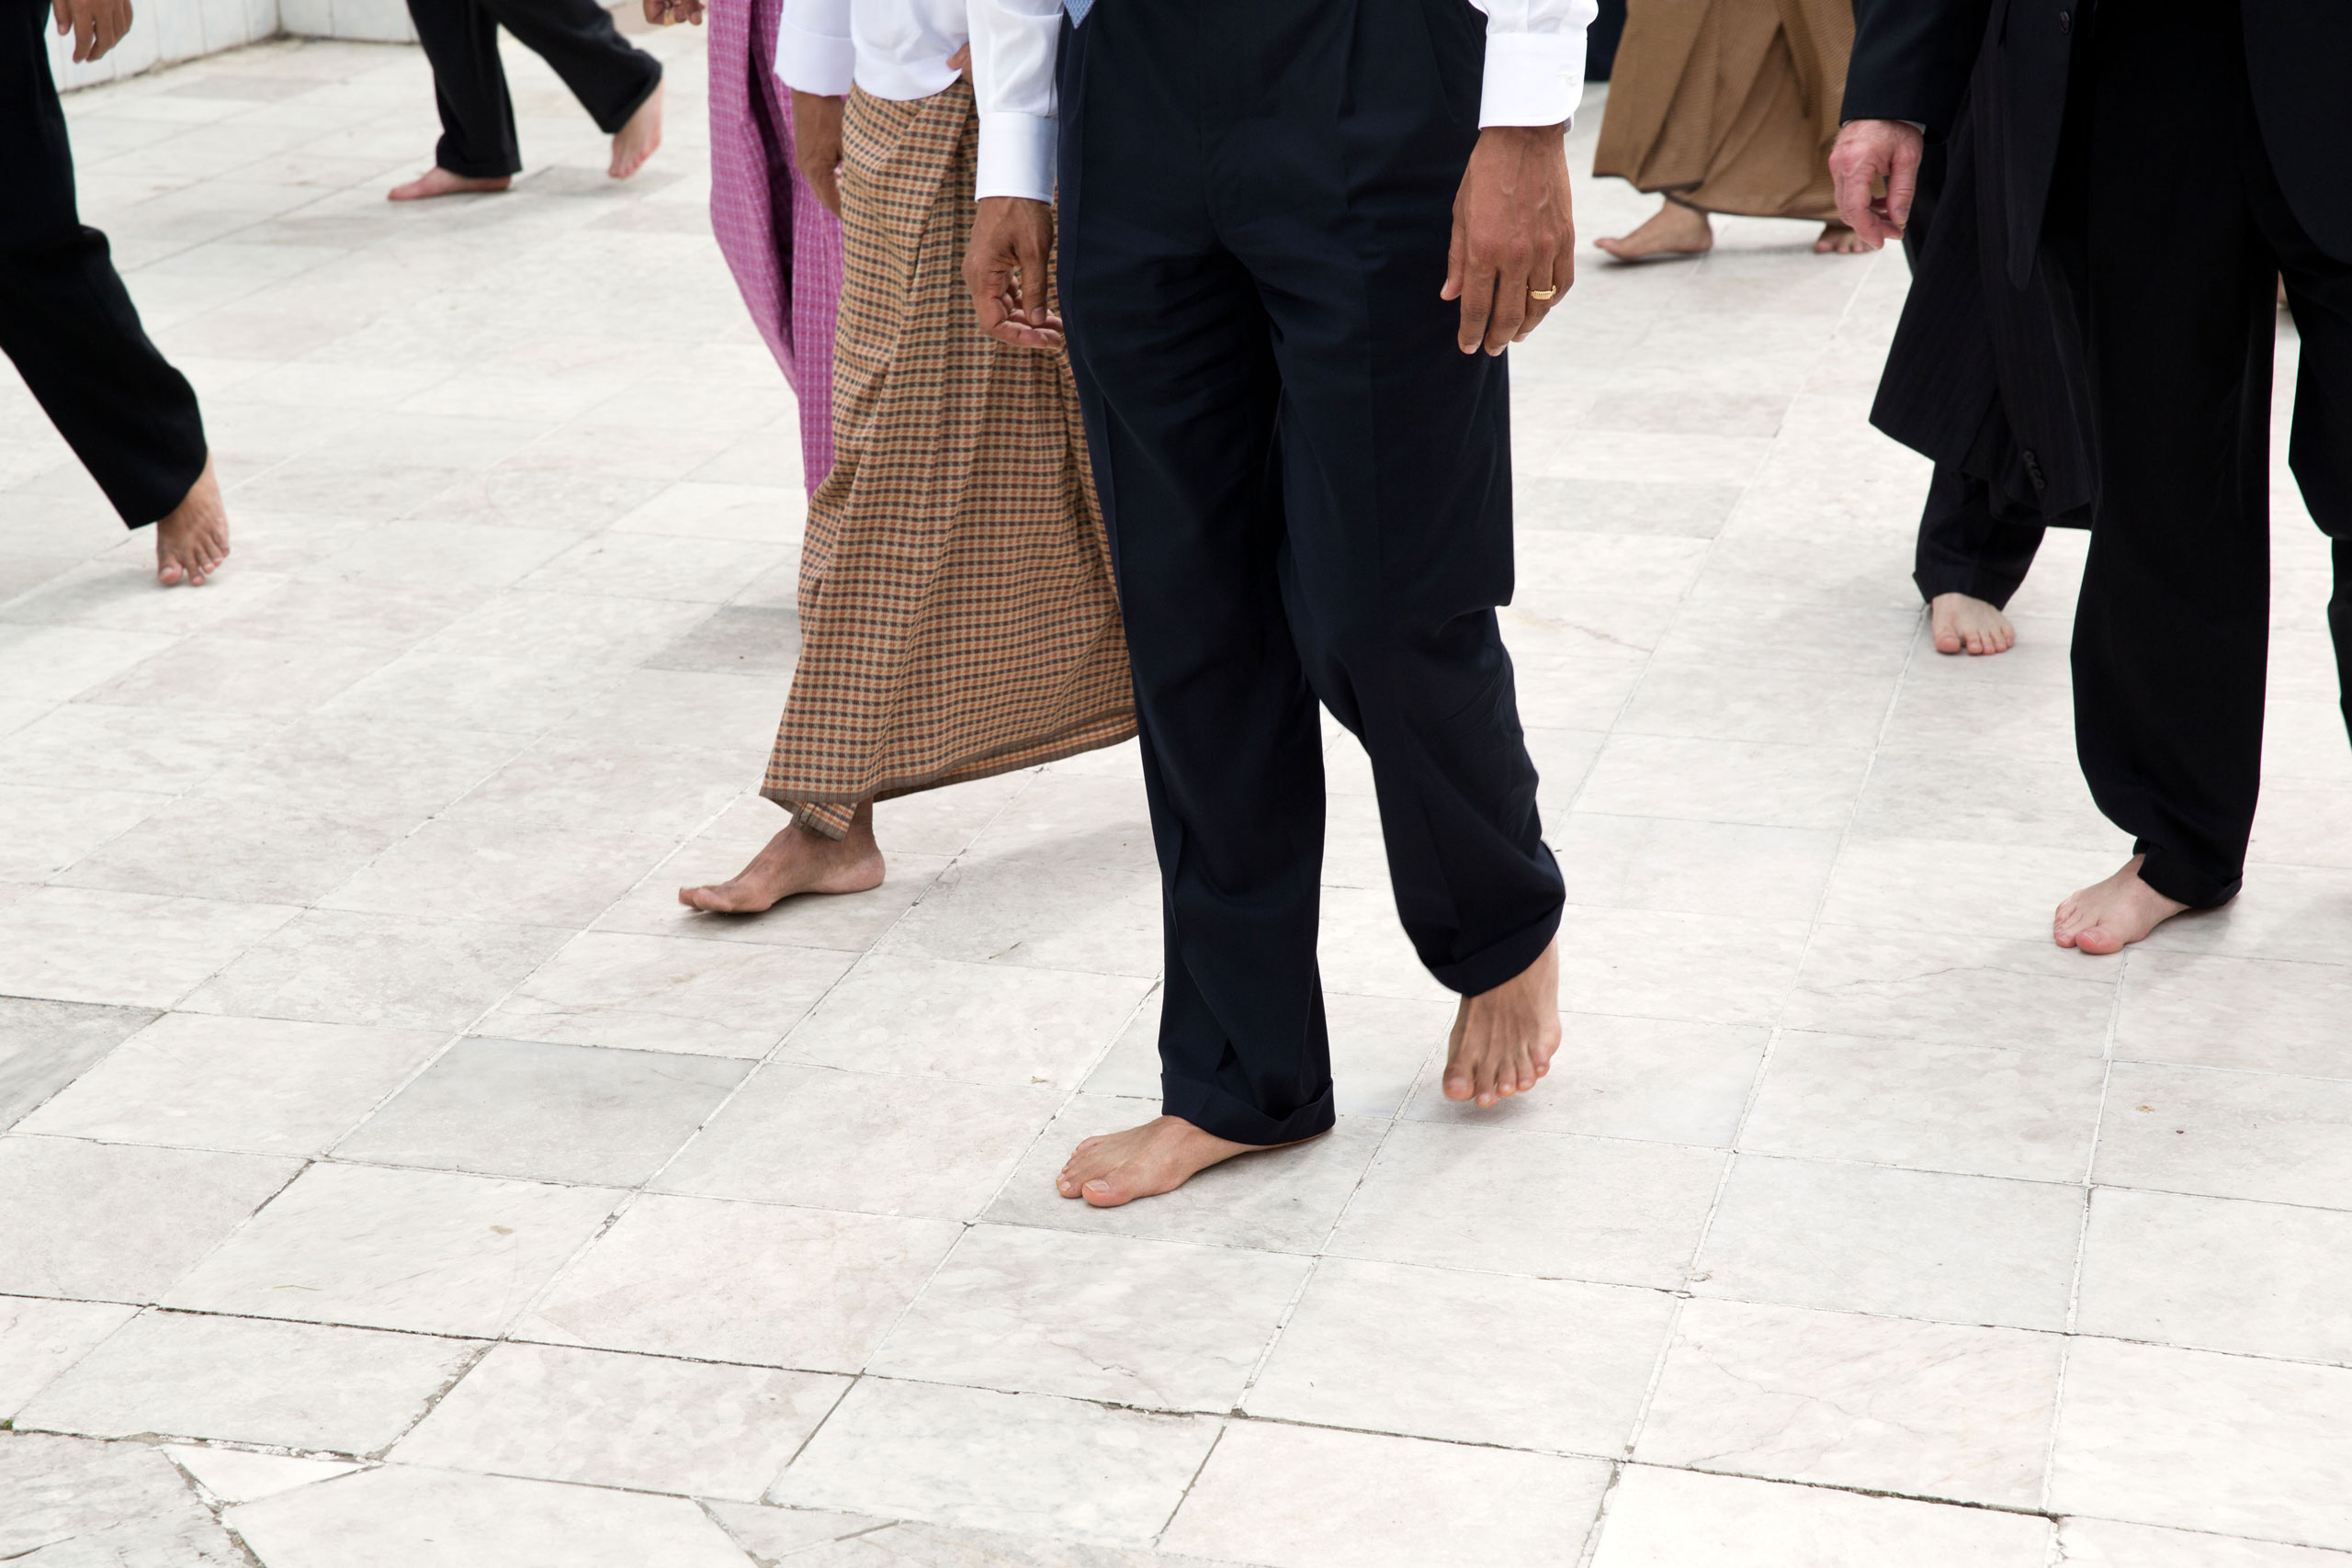 President Barack Obama, guides, and Secret Service agents walk barefoot during a tour of the Shwedagon Pagoda in Rangoon, Burma, Nov. 19, 2012.